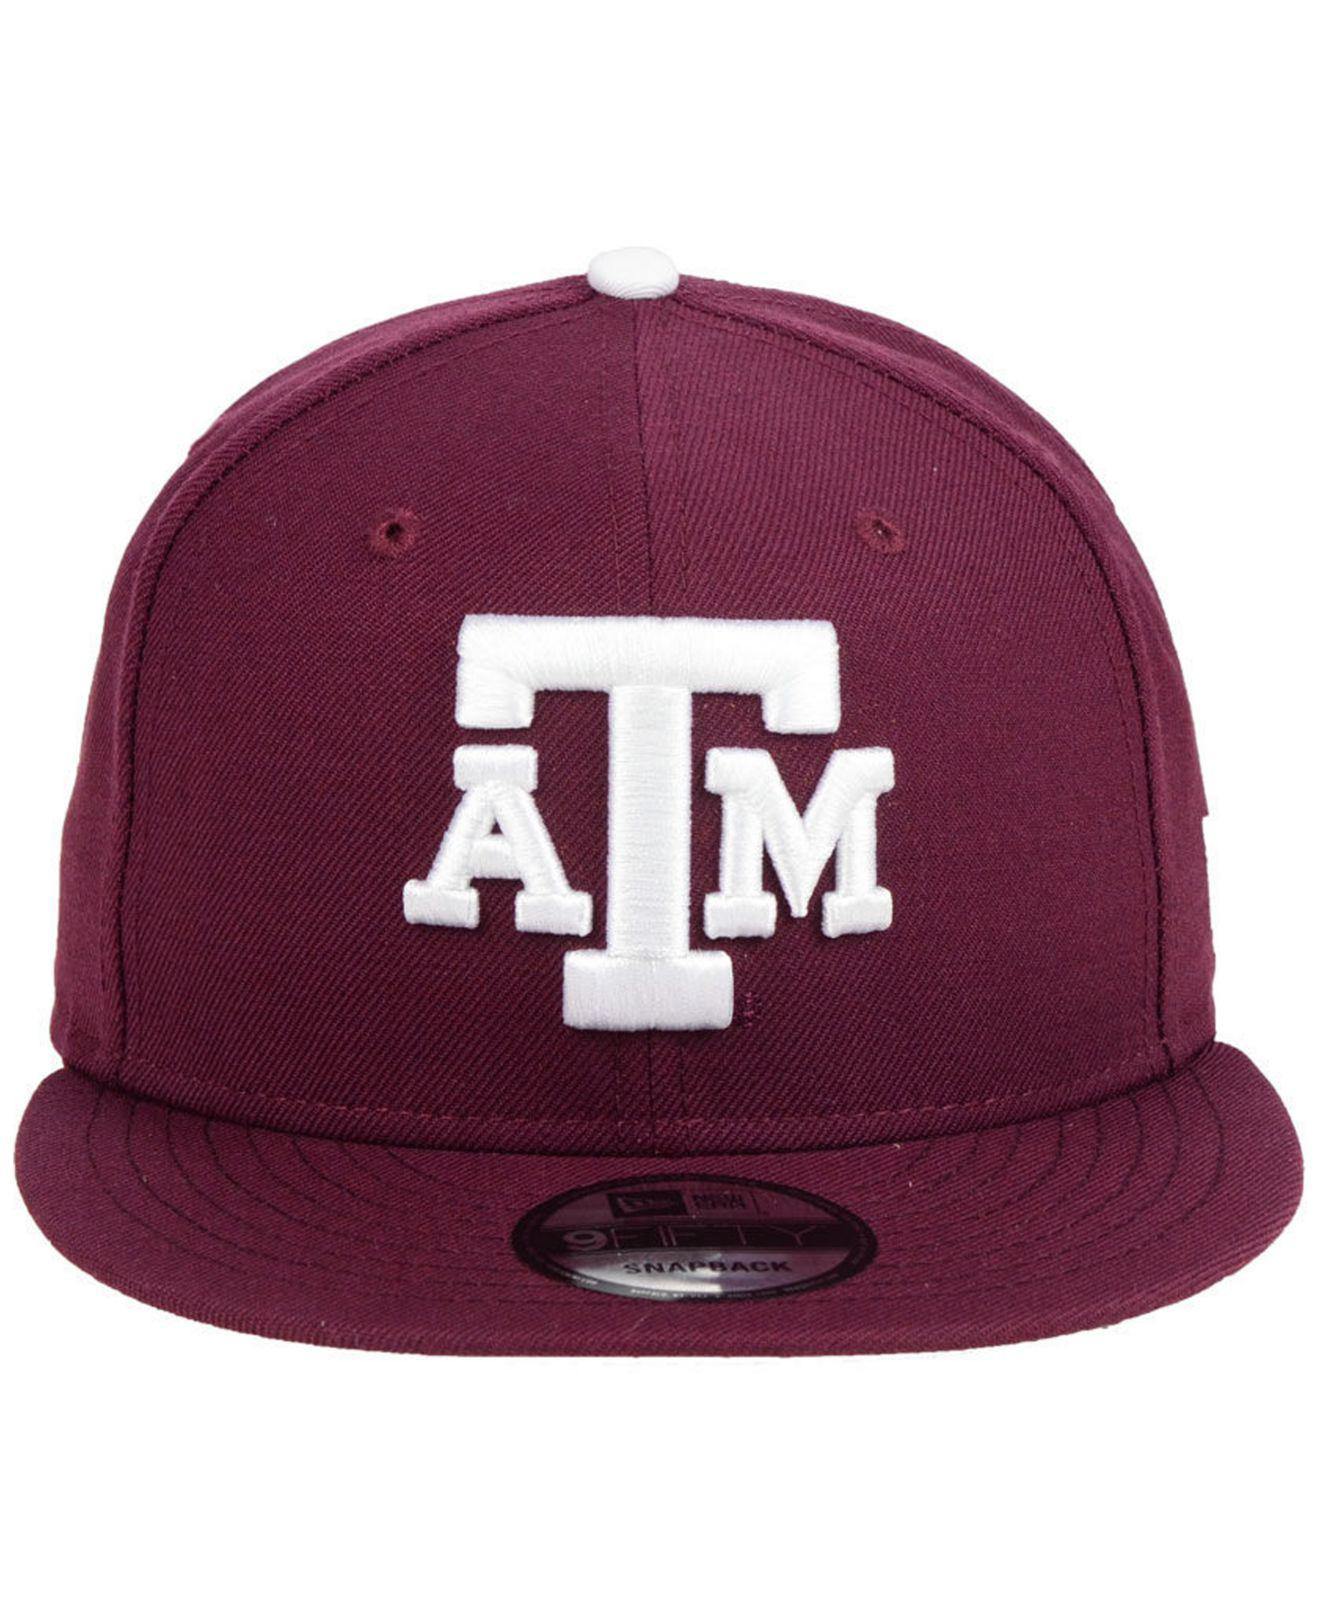 f9a4affec99 Lyst - Ktz Texas A m Aggies Core 9fifty Snapback Cap in Purple for Men